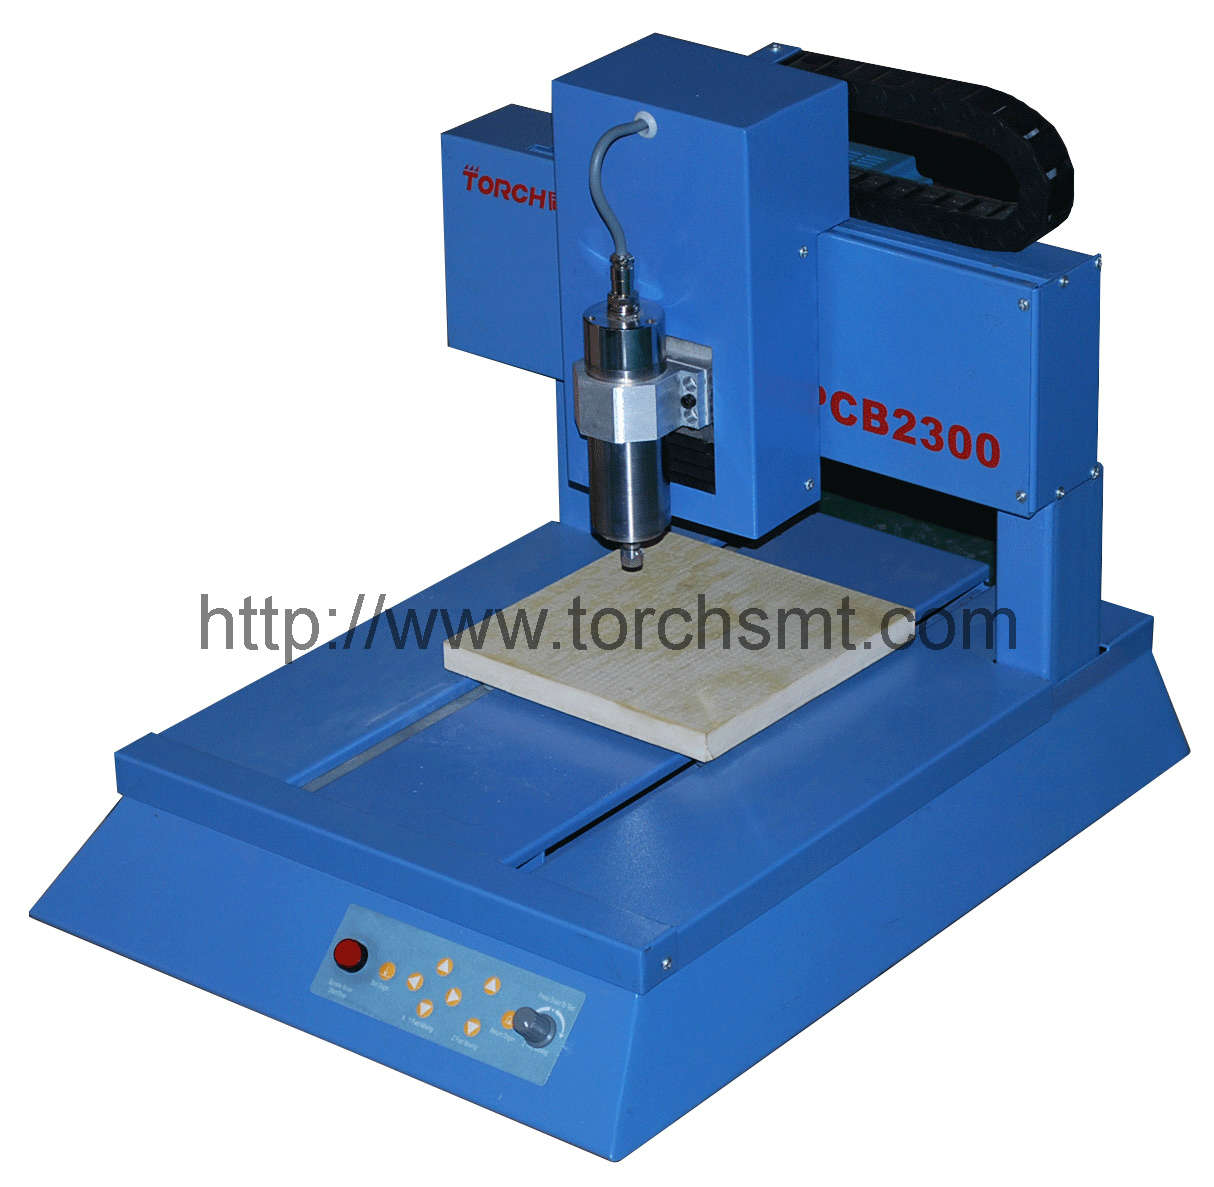 Plate making machine PCB2300